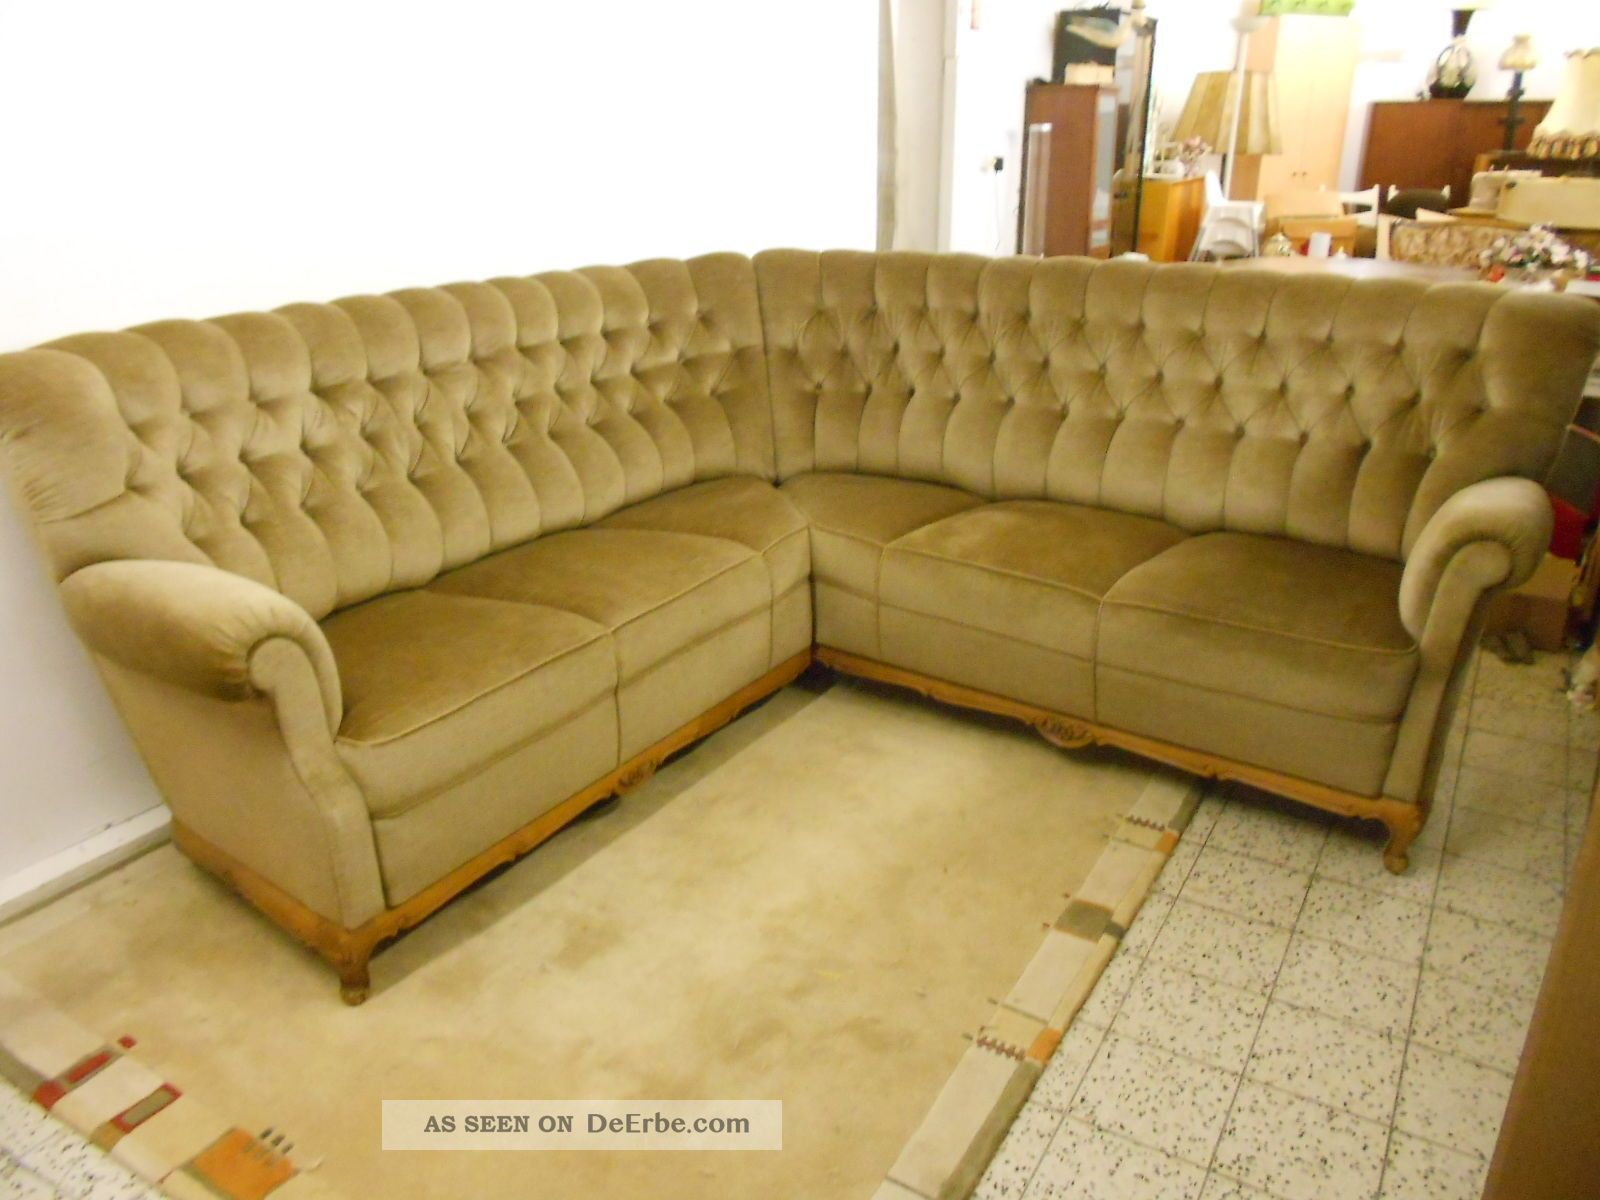 sofa couch ecksofa chippendale stil chesterfield stil gr n. Black Bedroom Furniture Sets. Home Design Ideas